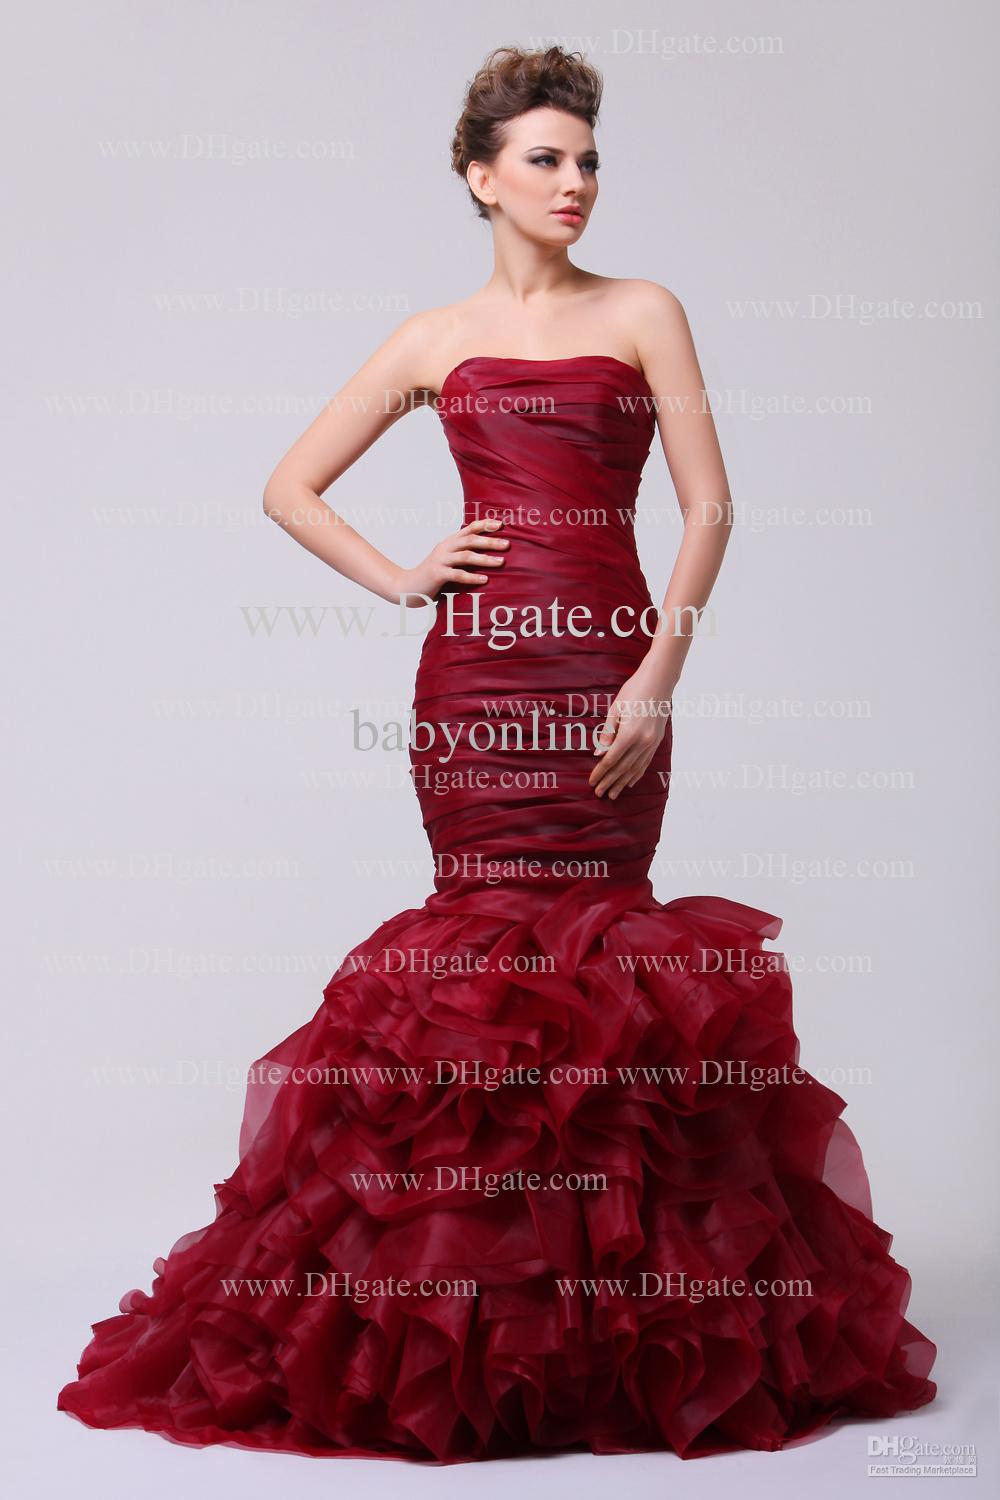 Wholesale Pageant Dresses - Buy 2014 Graceful Sexy Wine Red Mermaid Pageant Dresses Strapless Sleeveless Ruched Ruffles Backless Floor Length Organza Prom Dresses 0109, $153.75 | DHgate